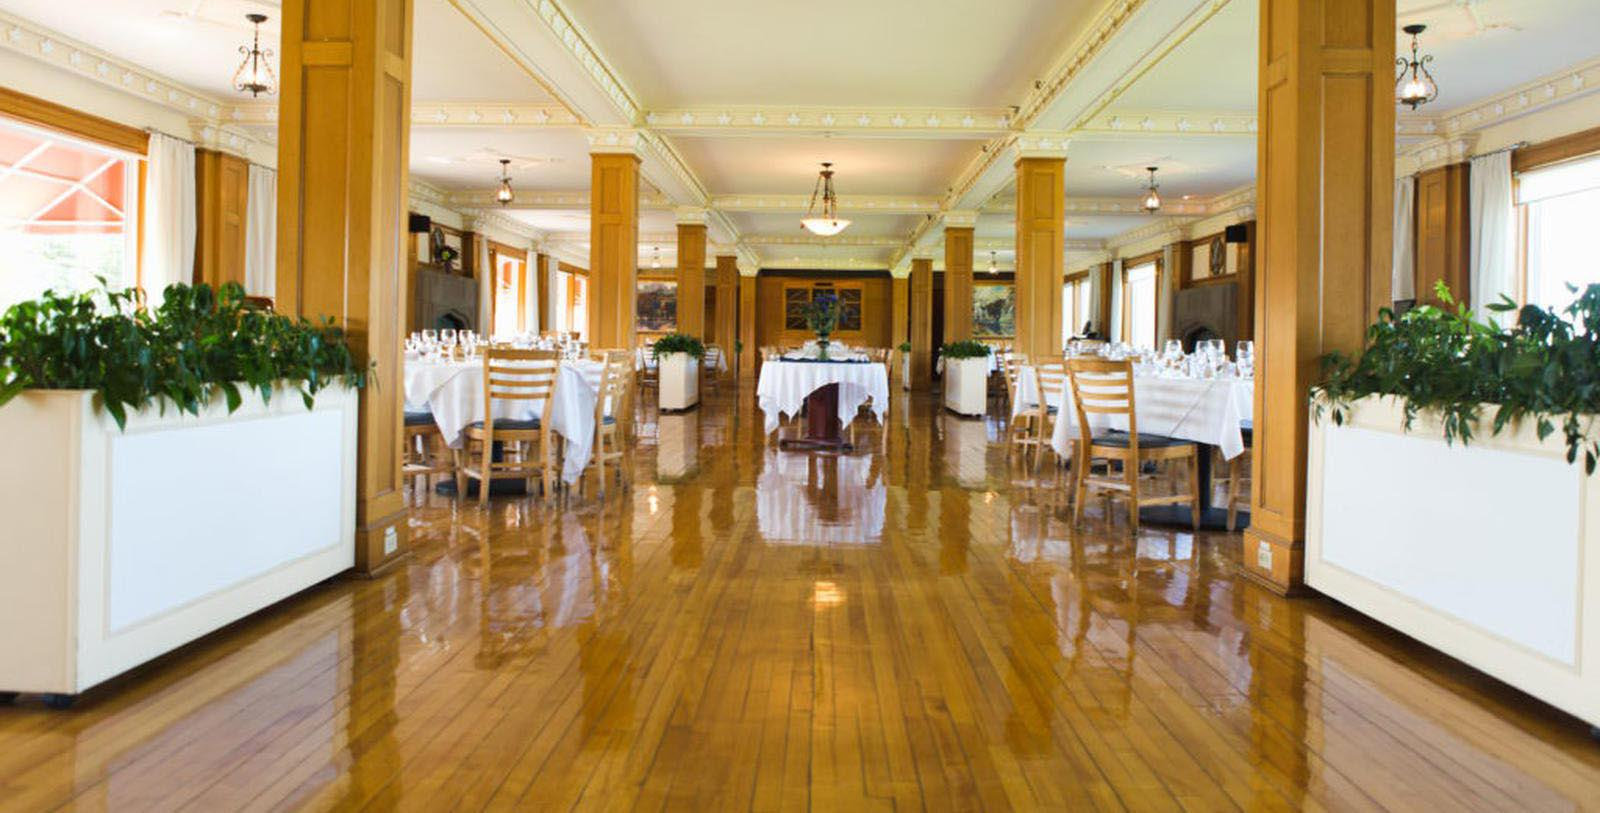 Image of Dining Area Keltic Lodge Resort and Spa, 1940, Member of Historic Hotels Worldwide, in Ingonish Beach, Nova Scotia, Taste